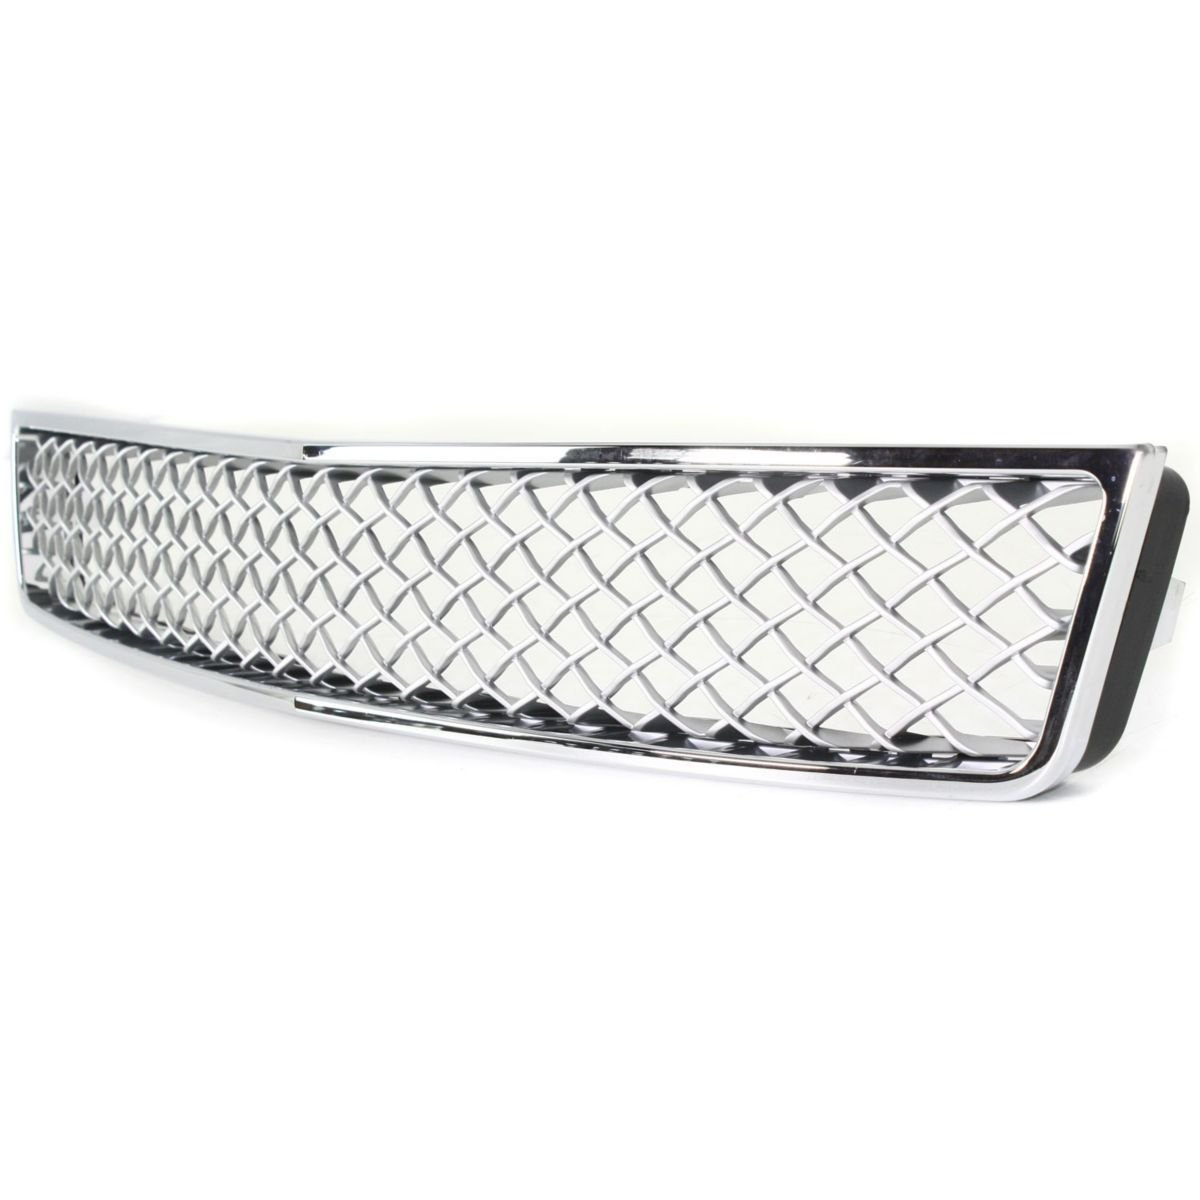 Diften 102-A1609-X01 - New Grille Assembly Grill Chrome shell dark gray insert Tahoe GM1200591 15946154